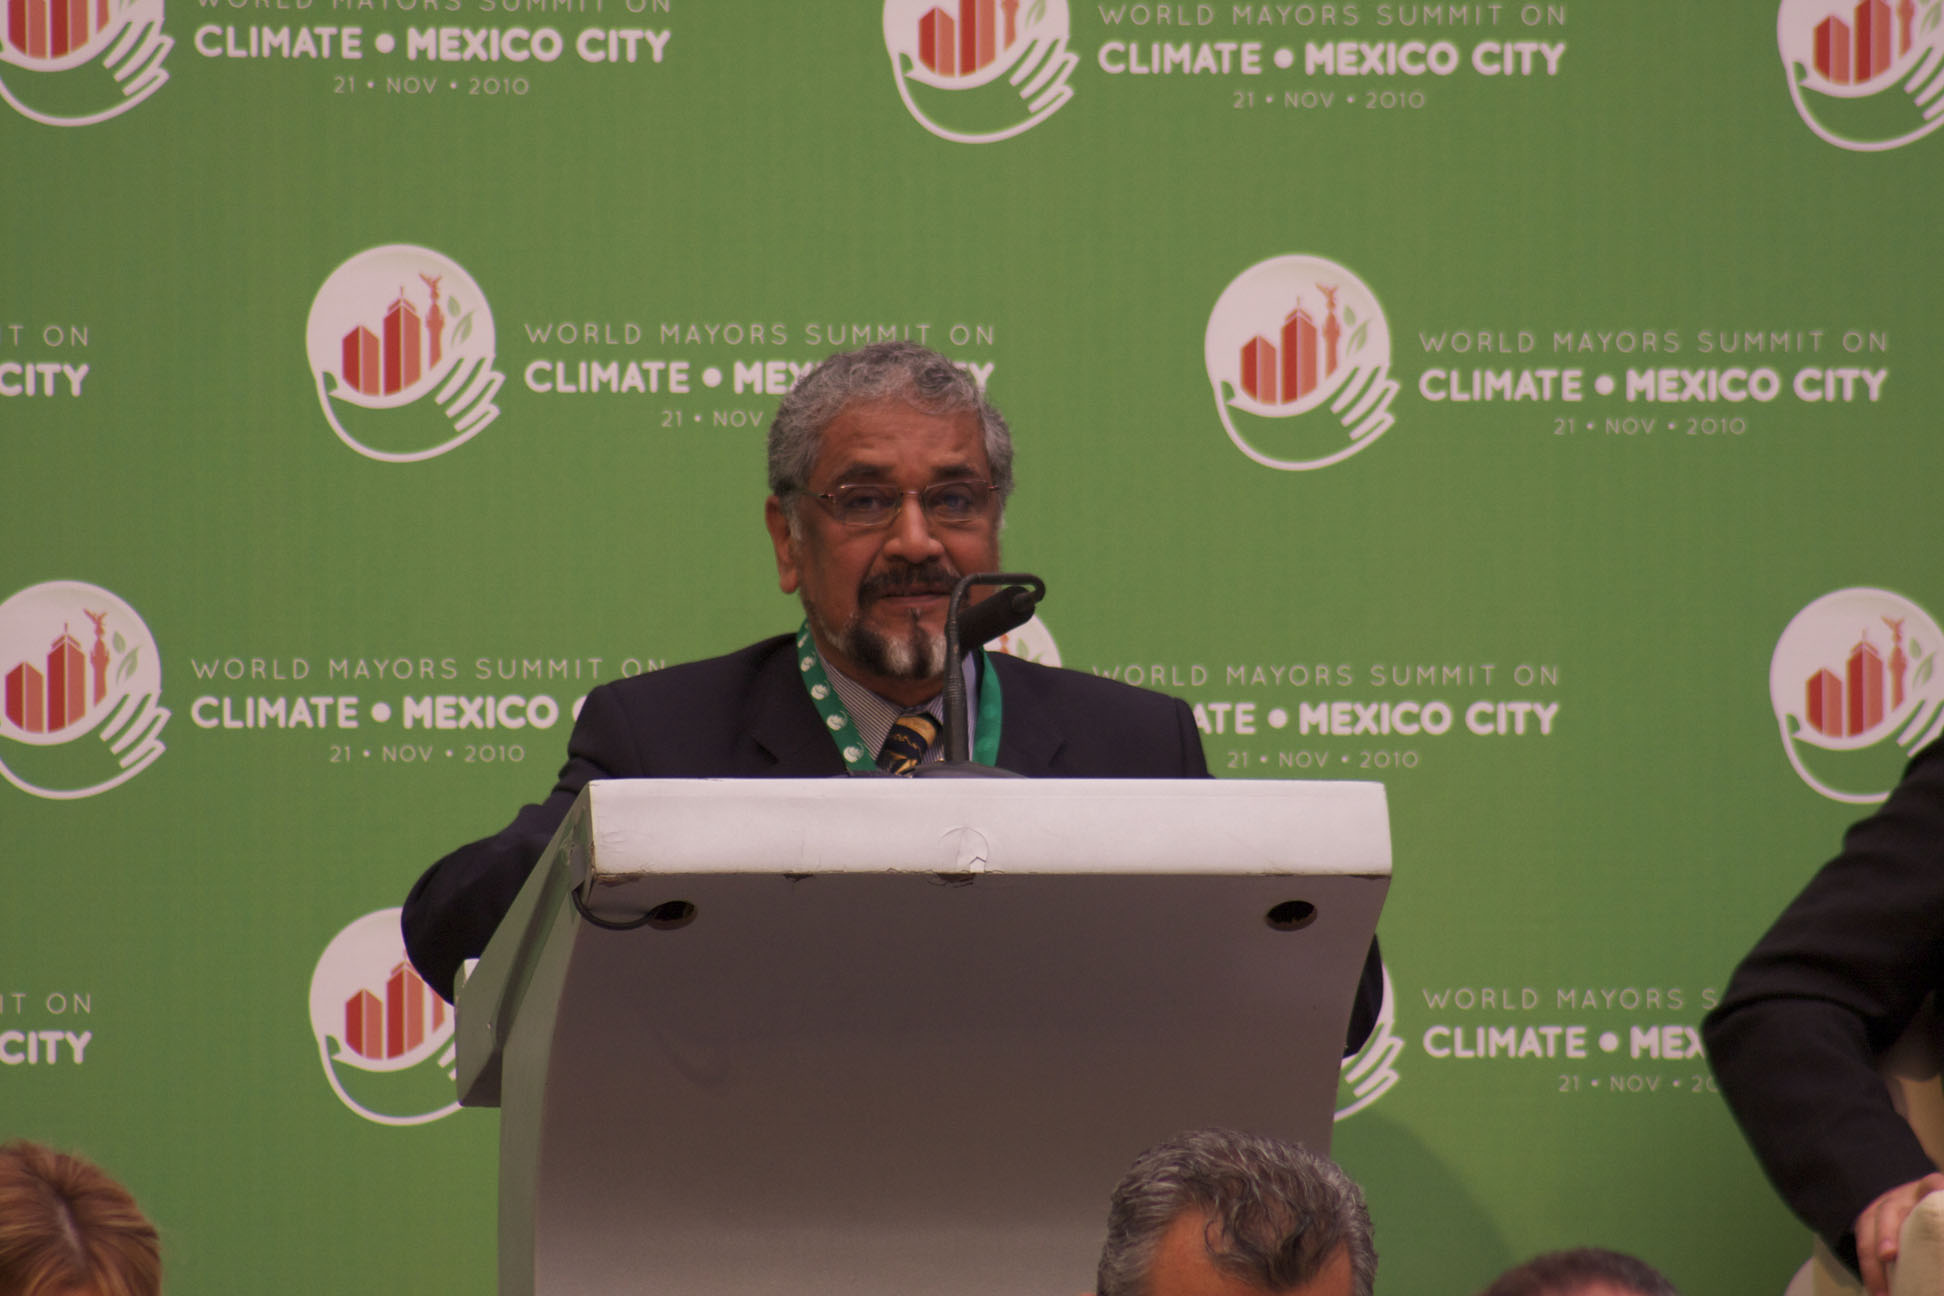 The Club de Madrid in the World Mayors Summit on Climate